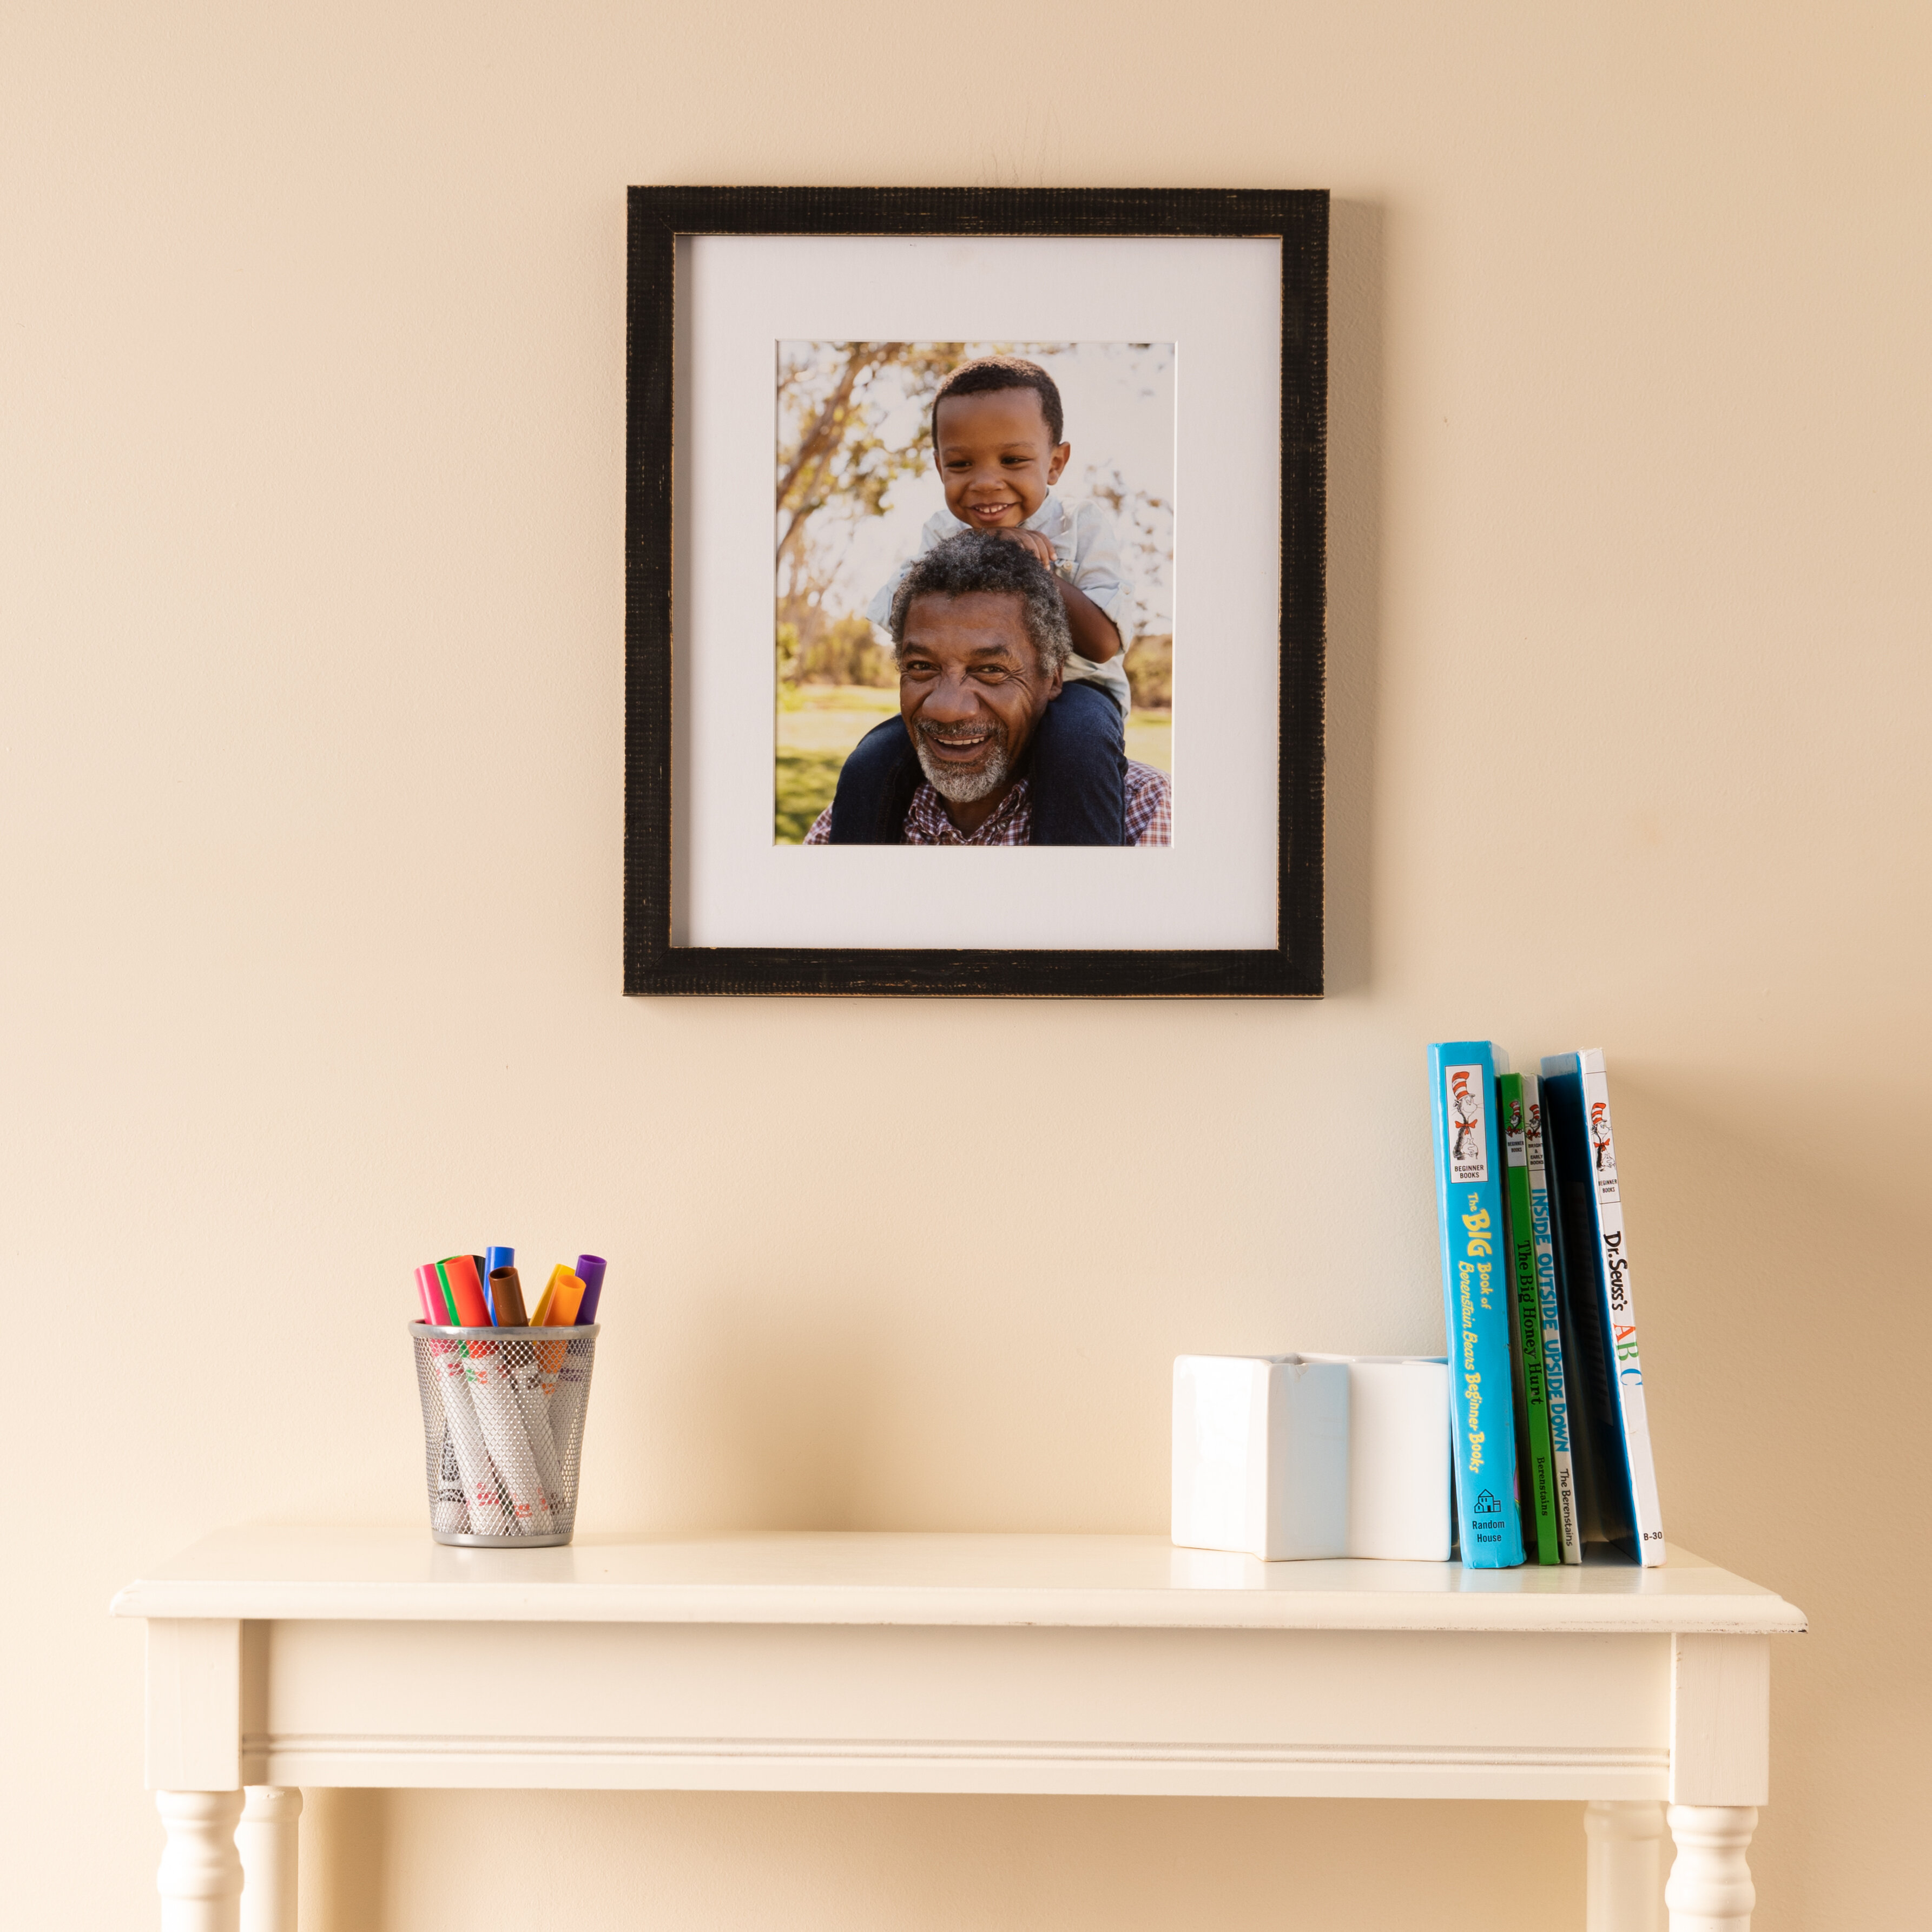 11 X 17 All Picture Frames You Ll Love In 2021 Wayfair